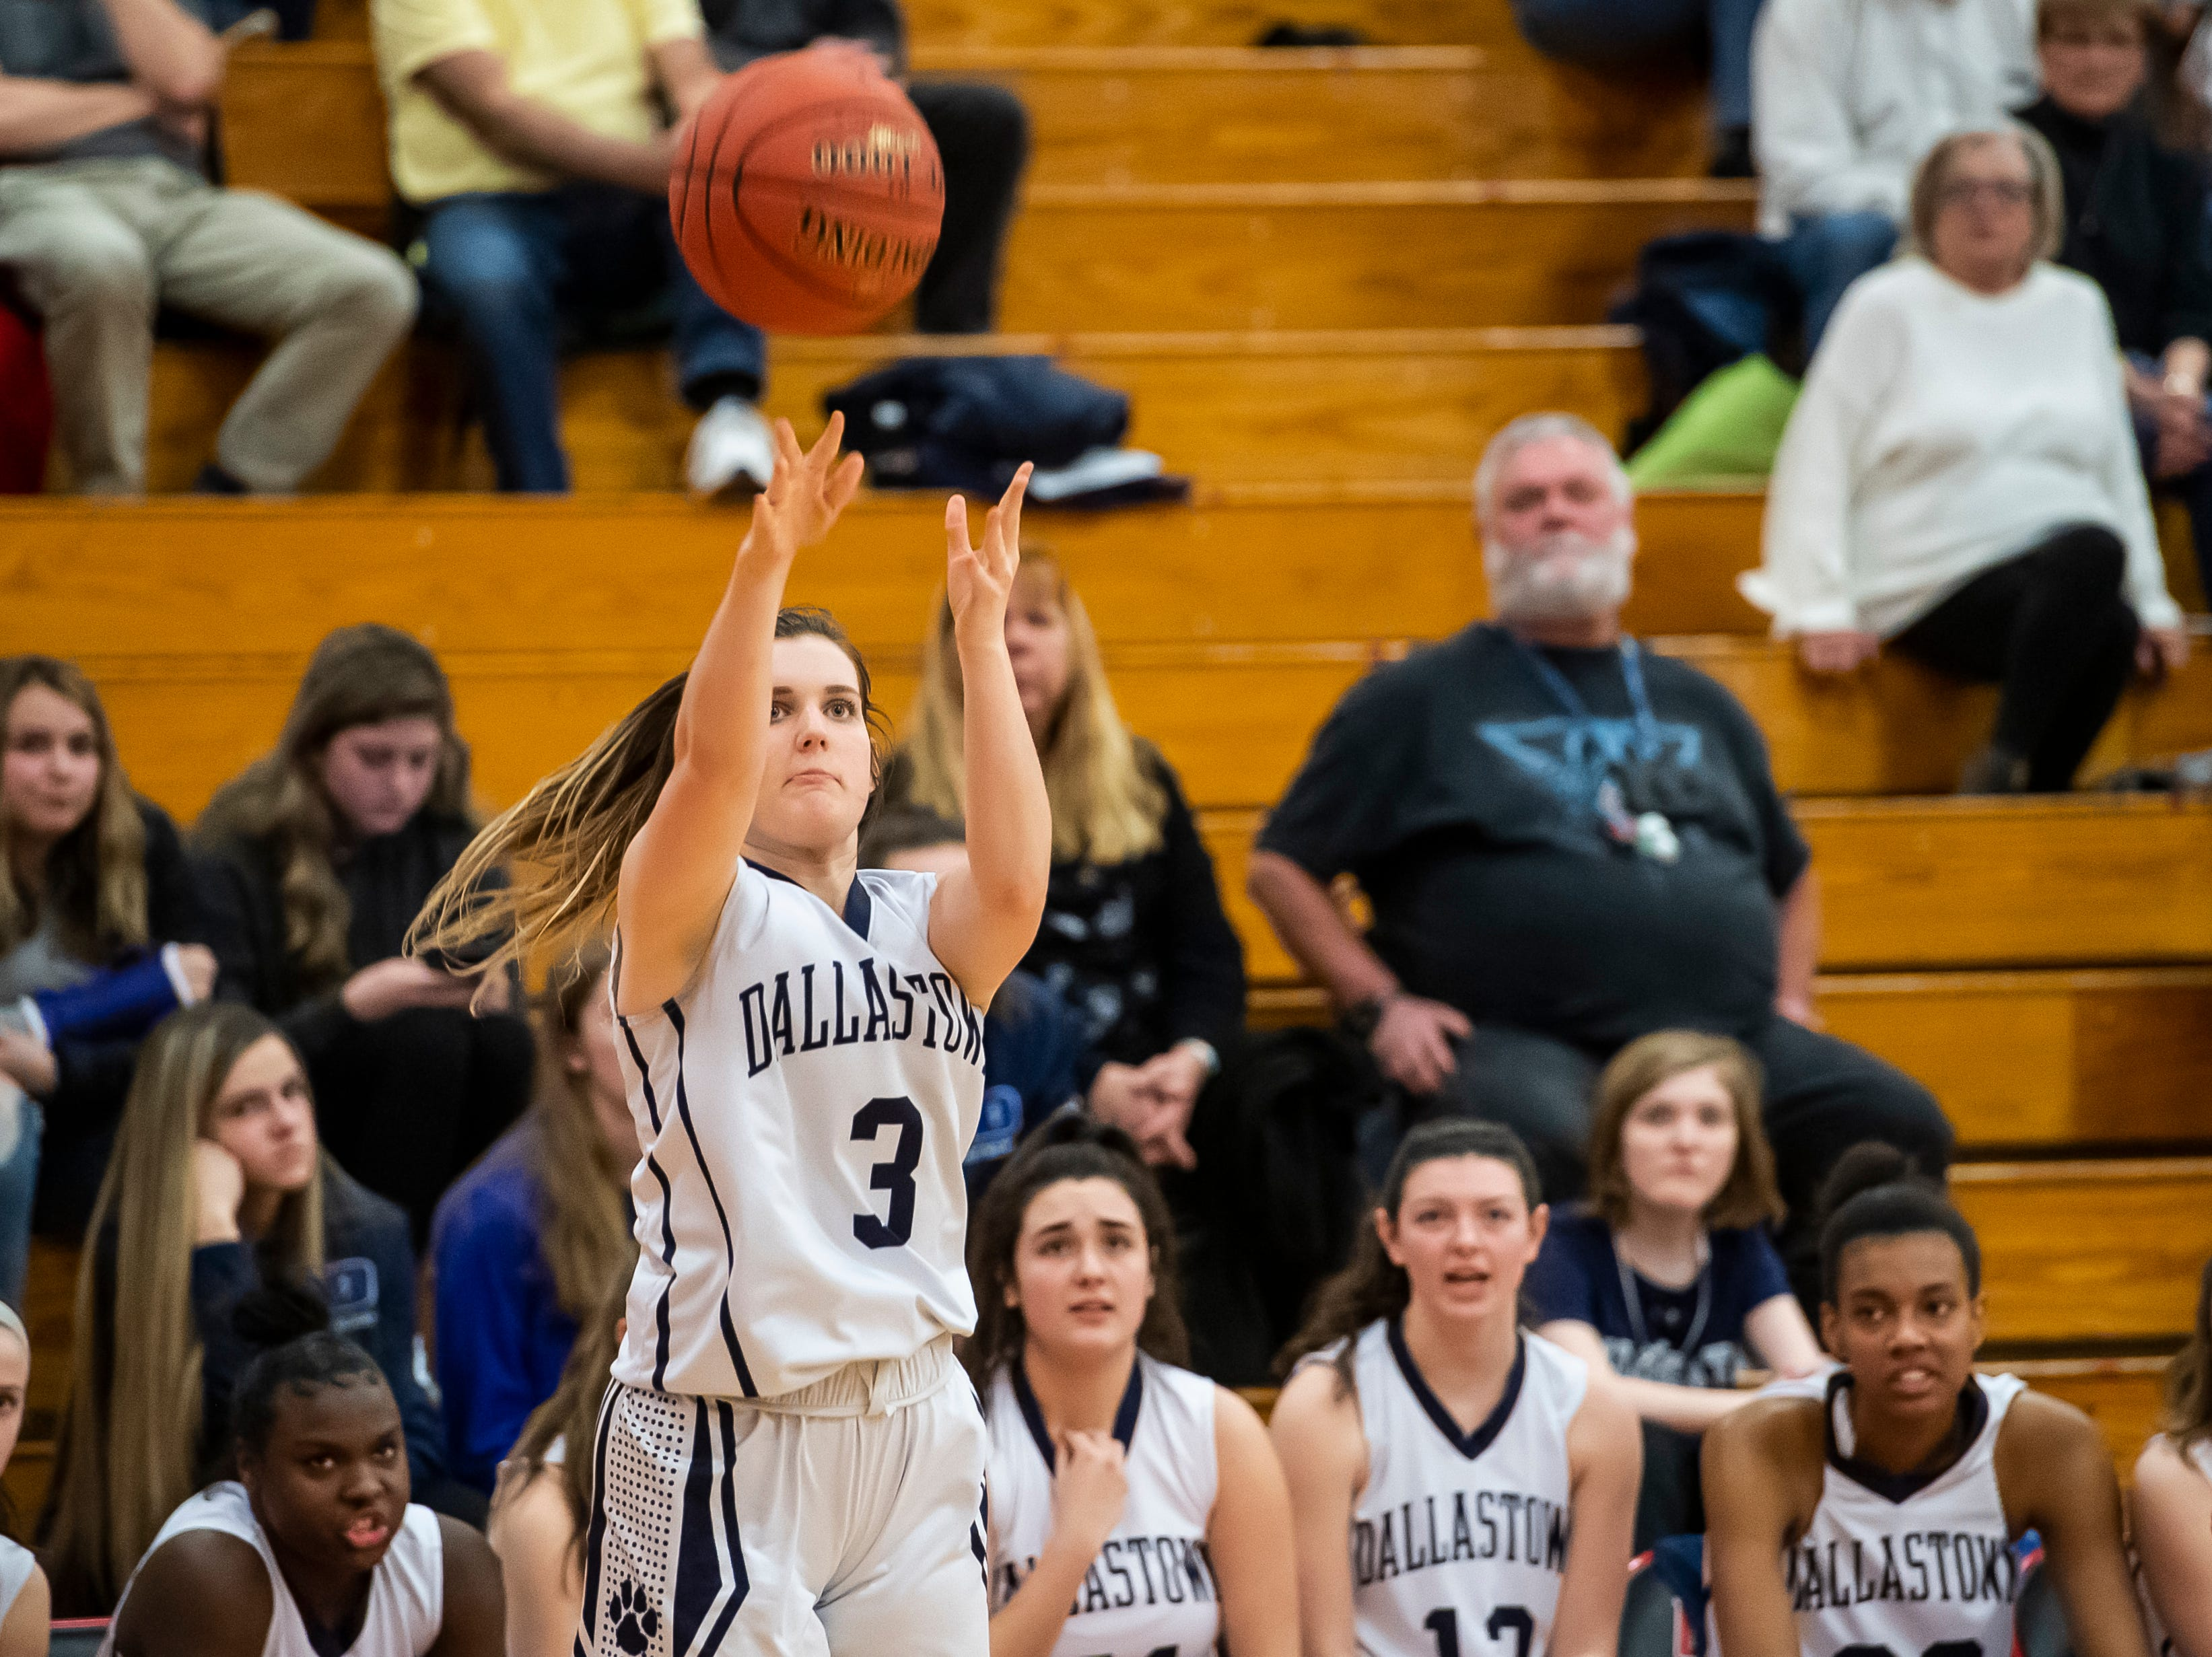 Dallastown's Claire Teyral shoots a corner three during play against Susquehannock in a YAIAA quarterfinal game at Dover High School Friday, February 8, 2019. The Wildcats won 42-29.